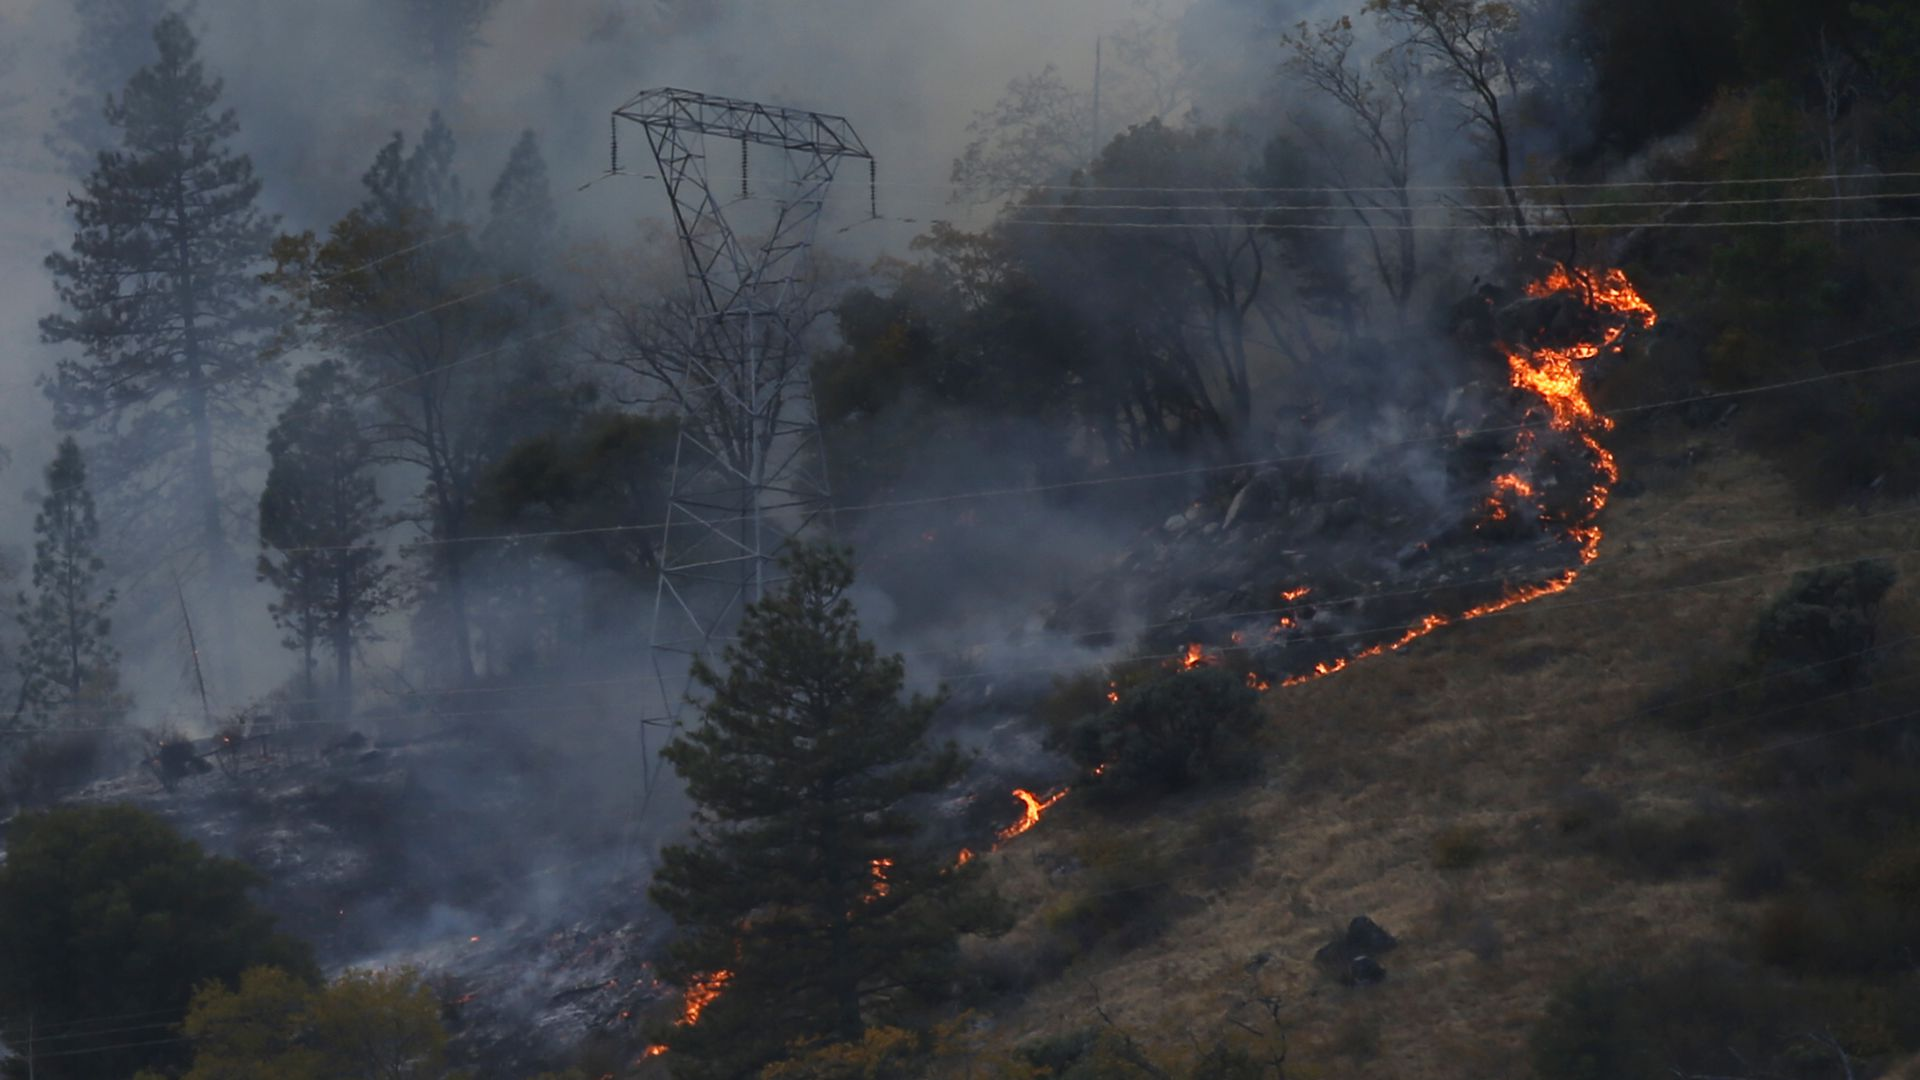 Photo of a transmission tower with a wildfire nearby